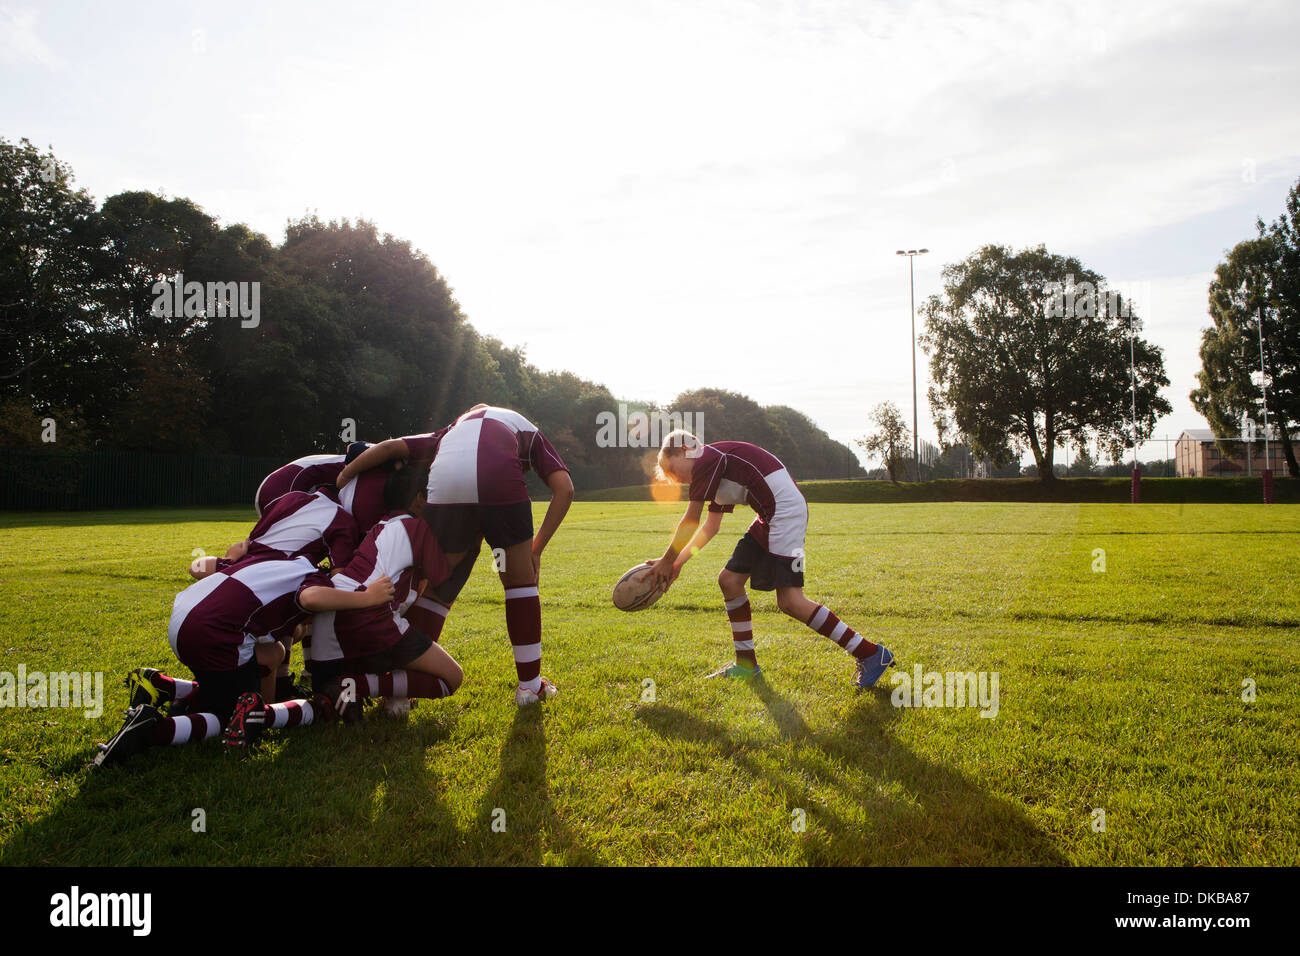 Teenage schoolboy rugby team taking ball from huddle - Stock Image